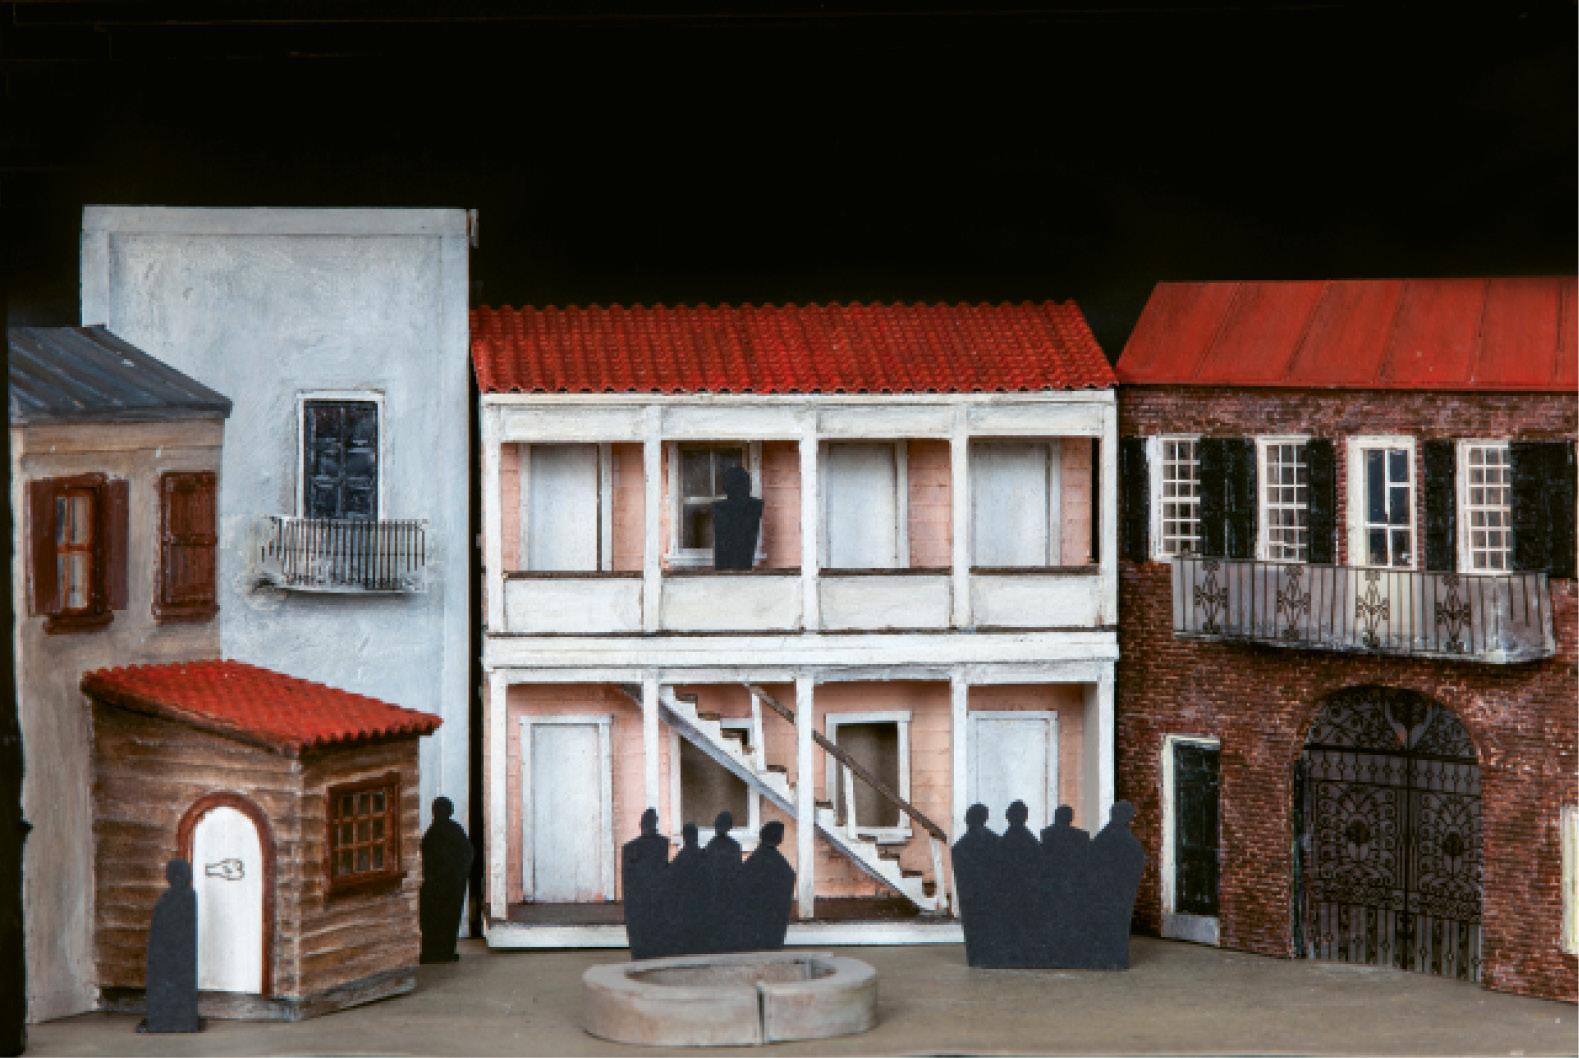 Maquettes for the sets of Porgy and Bess at the Spoleto scene shop demonstrate Green's direction, including Catfish Row, which will transform decoratively throughout the show as African design elements, such as diamond patterns, are added.